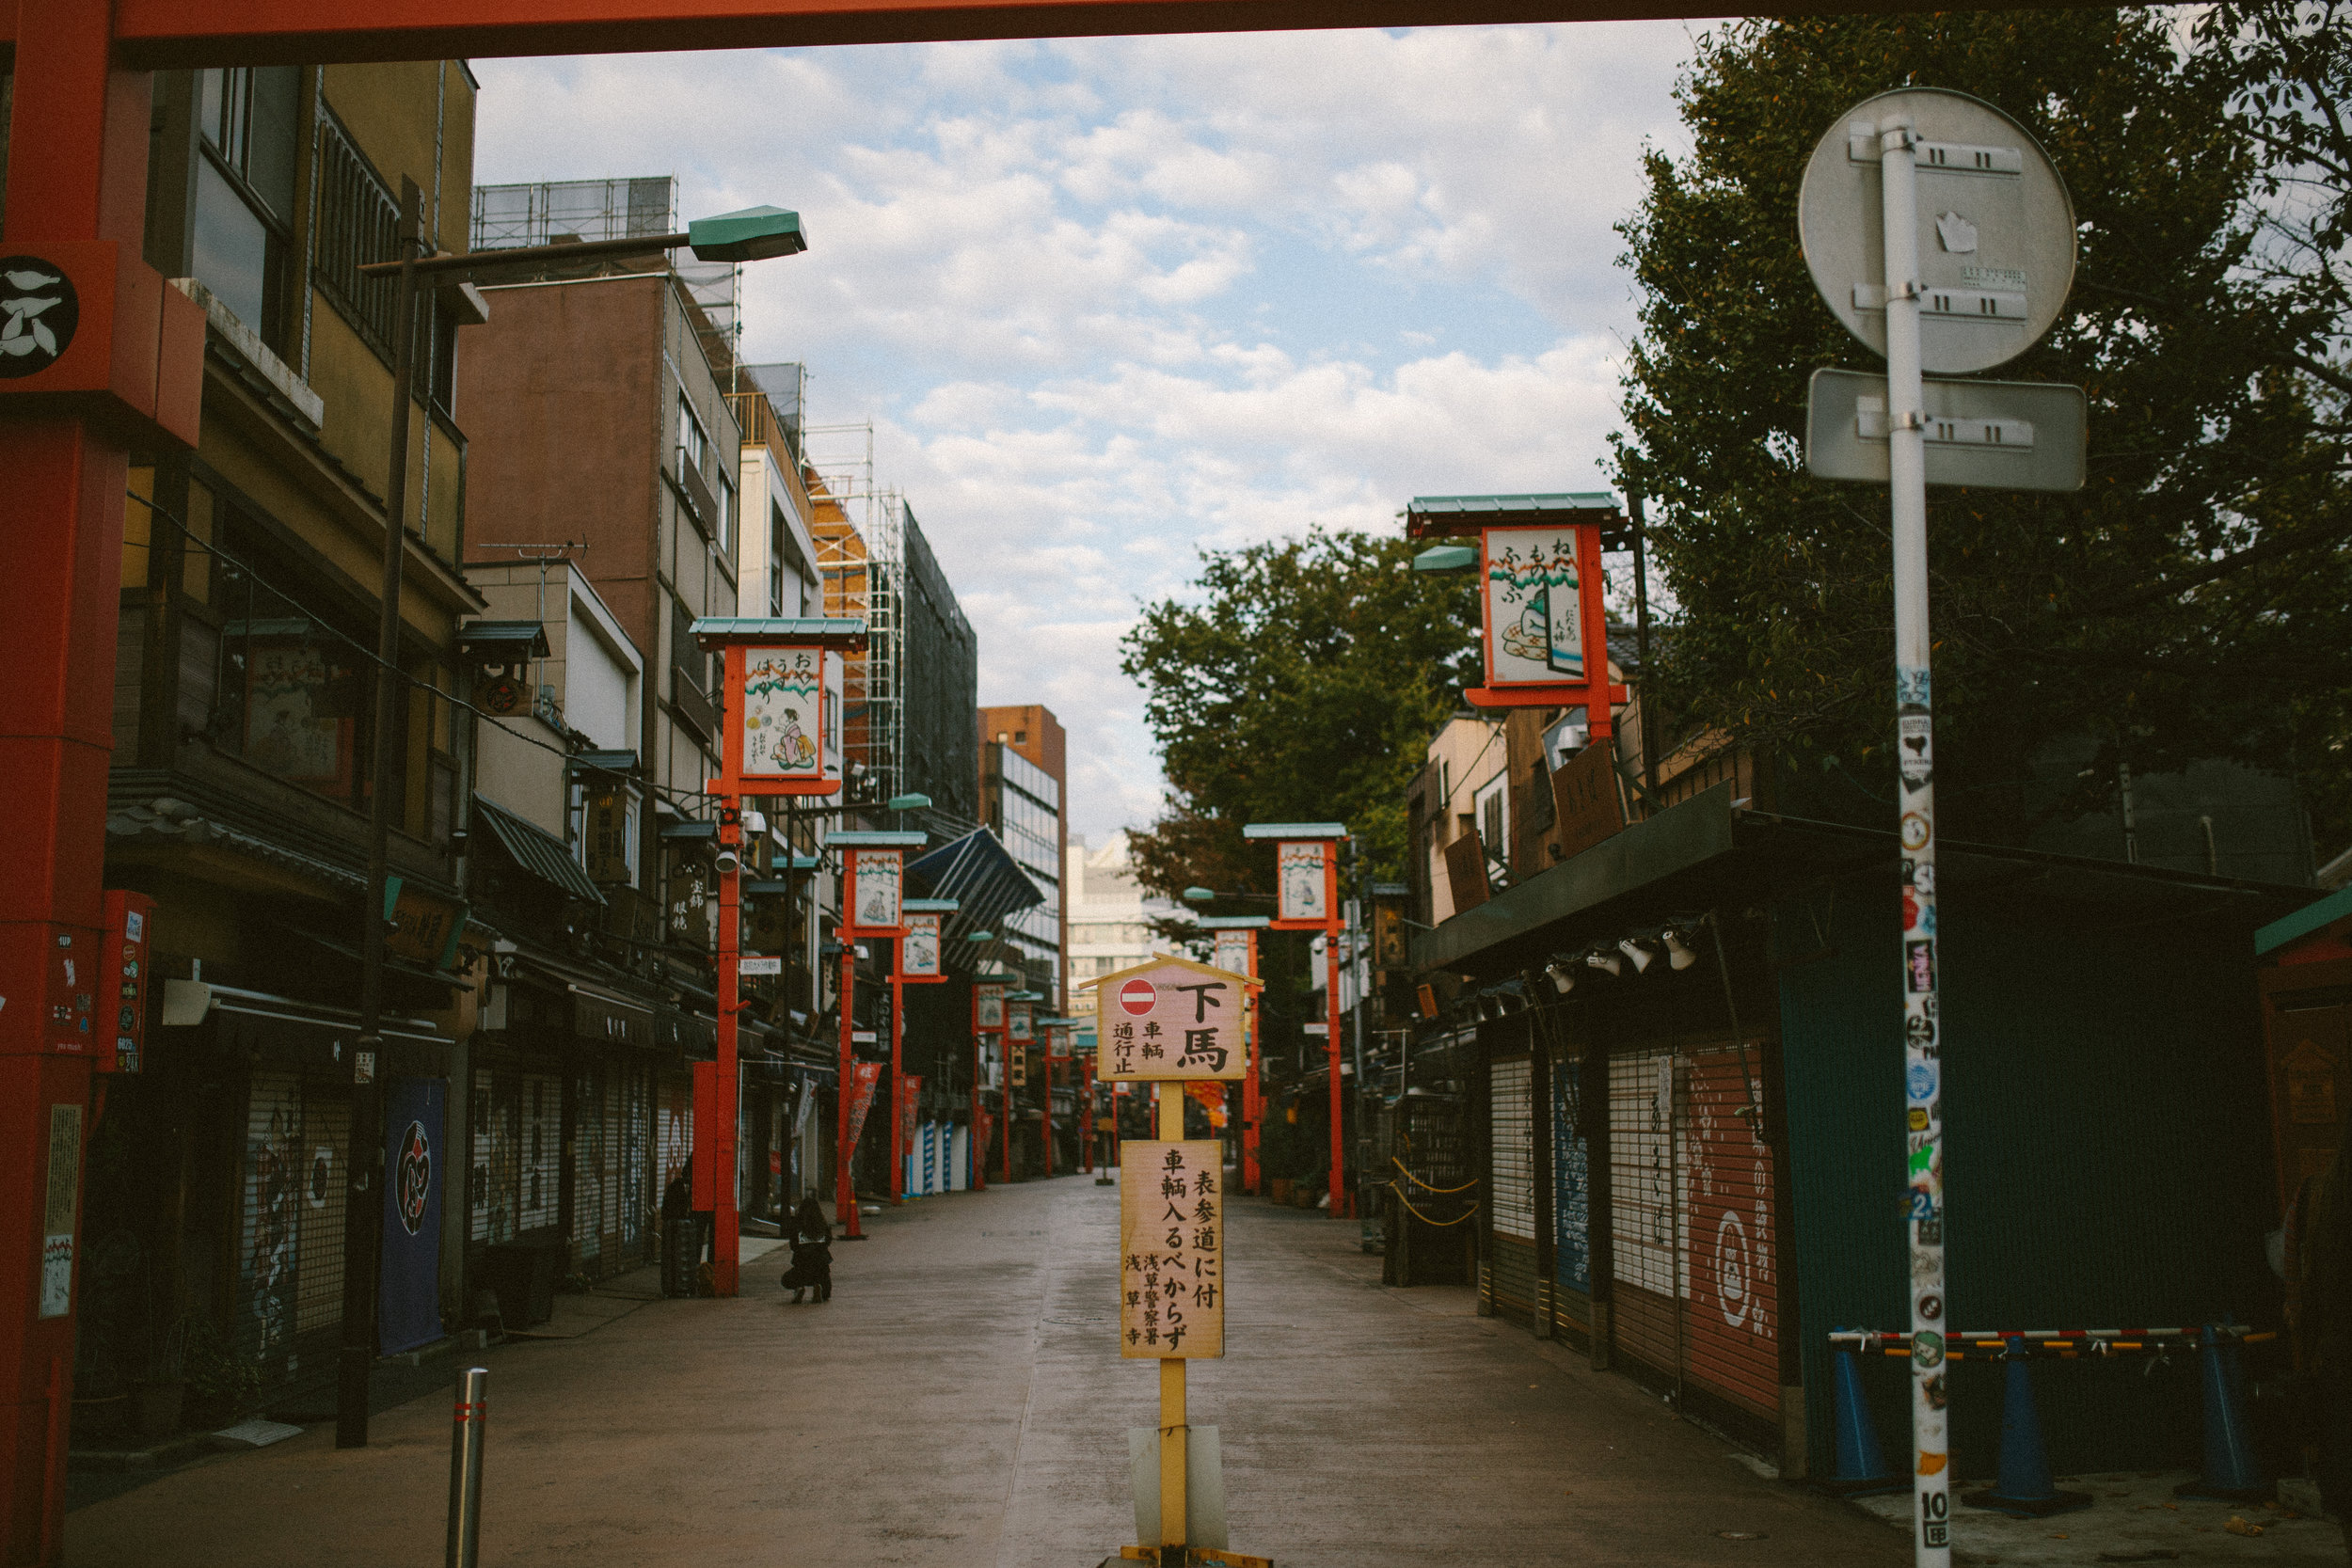 These small streets were seriously the coolest and became my favorite things to spot and photograph all over Japan.